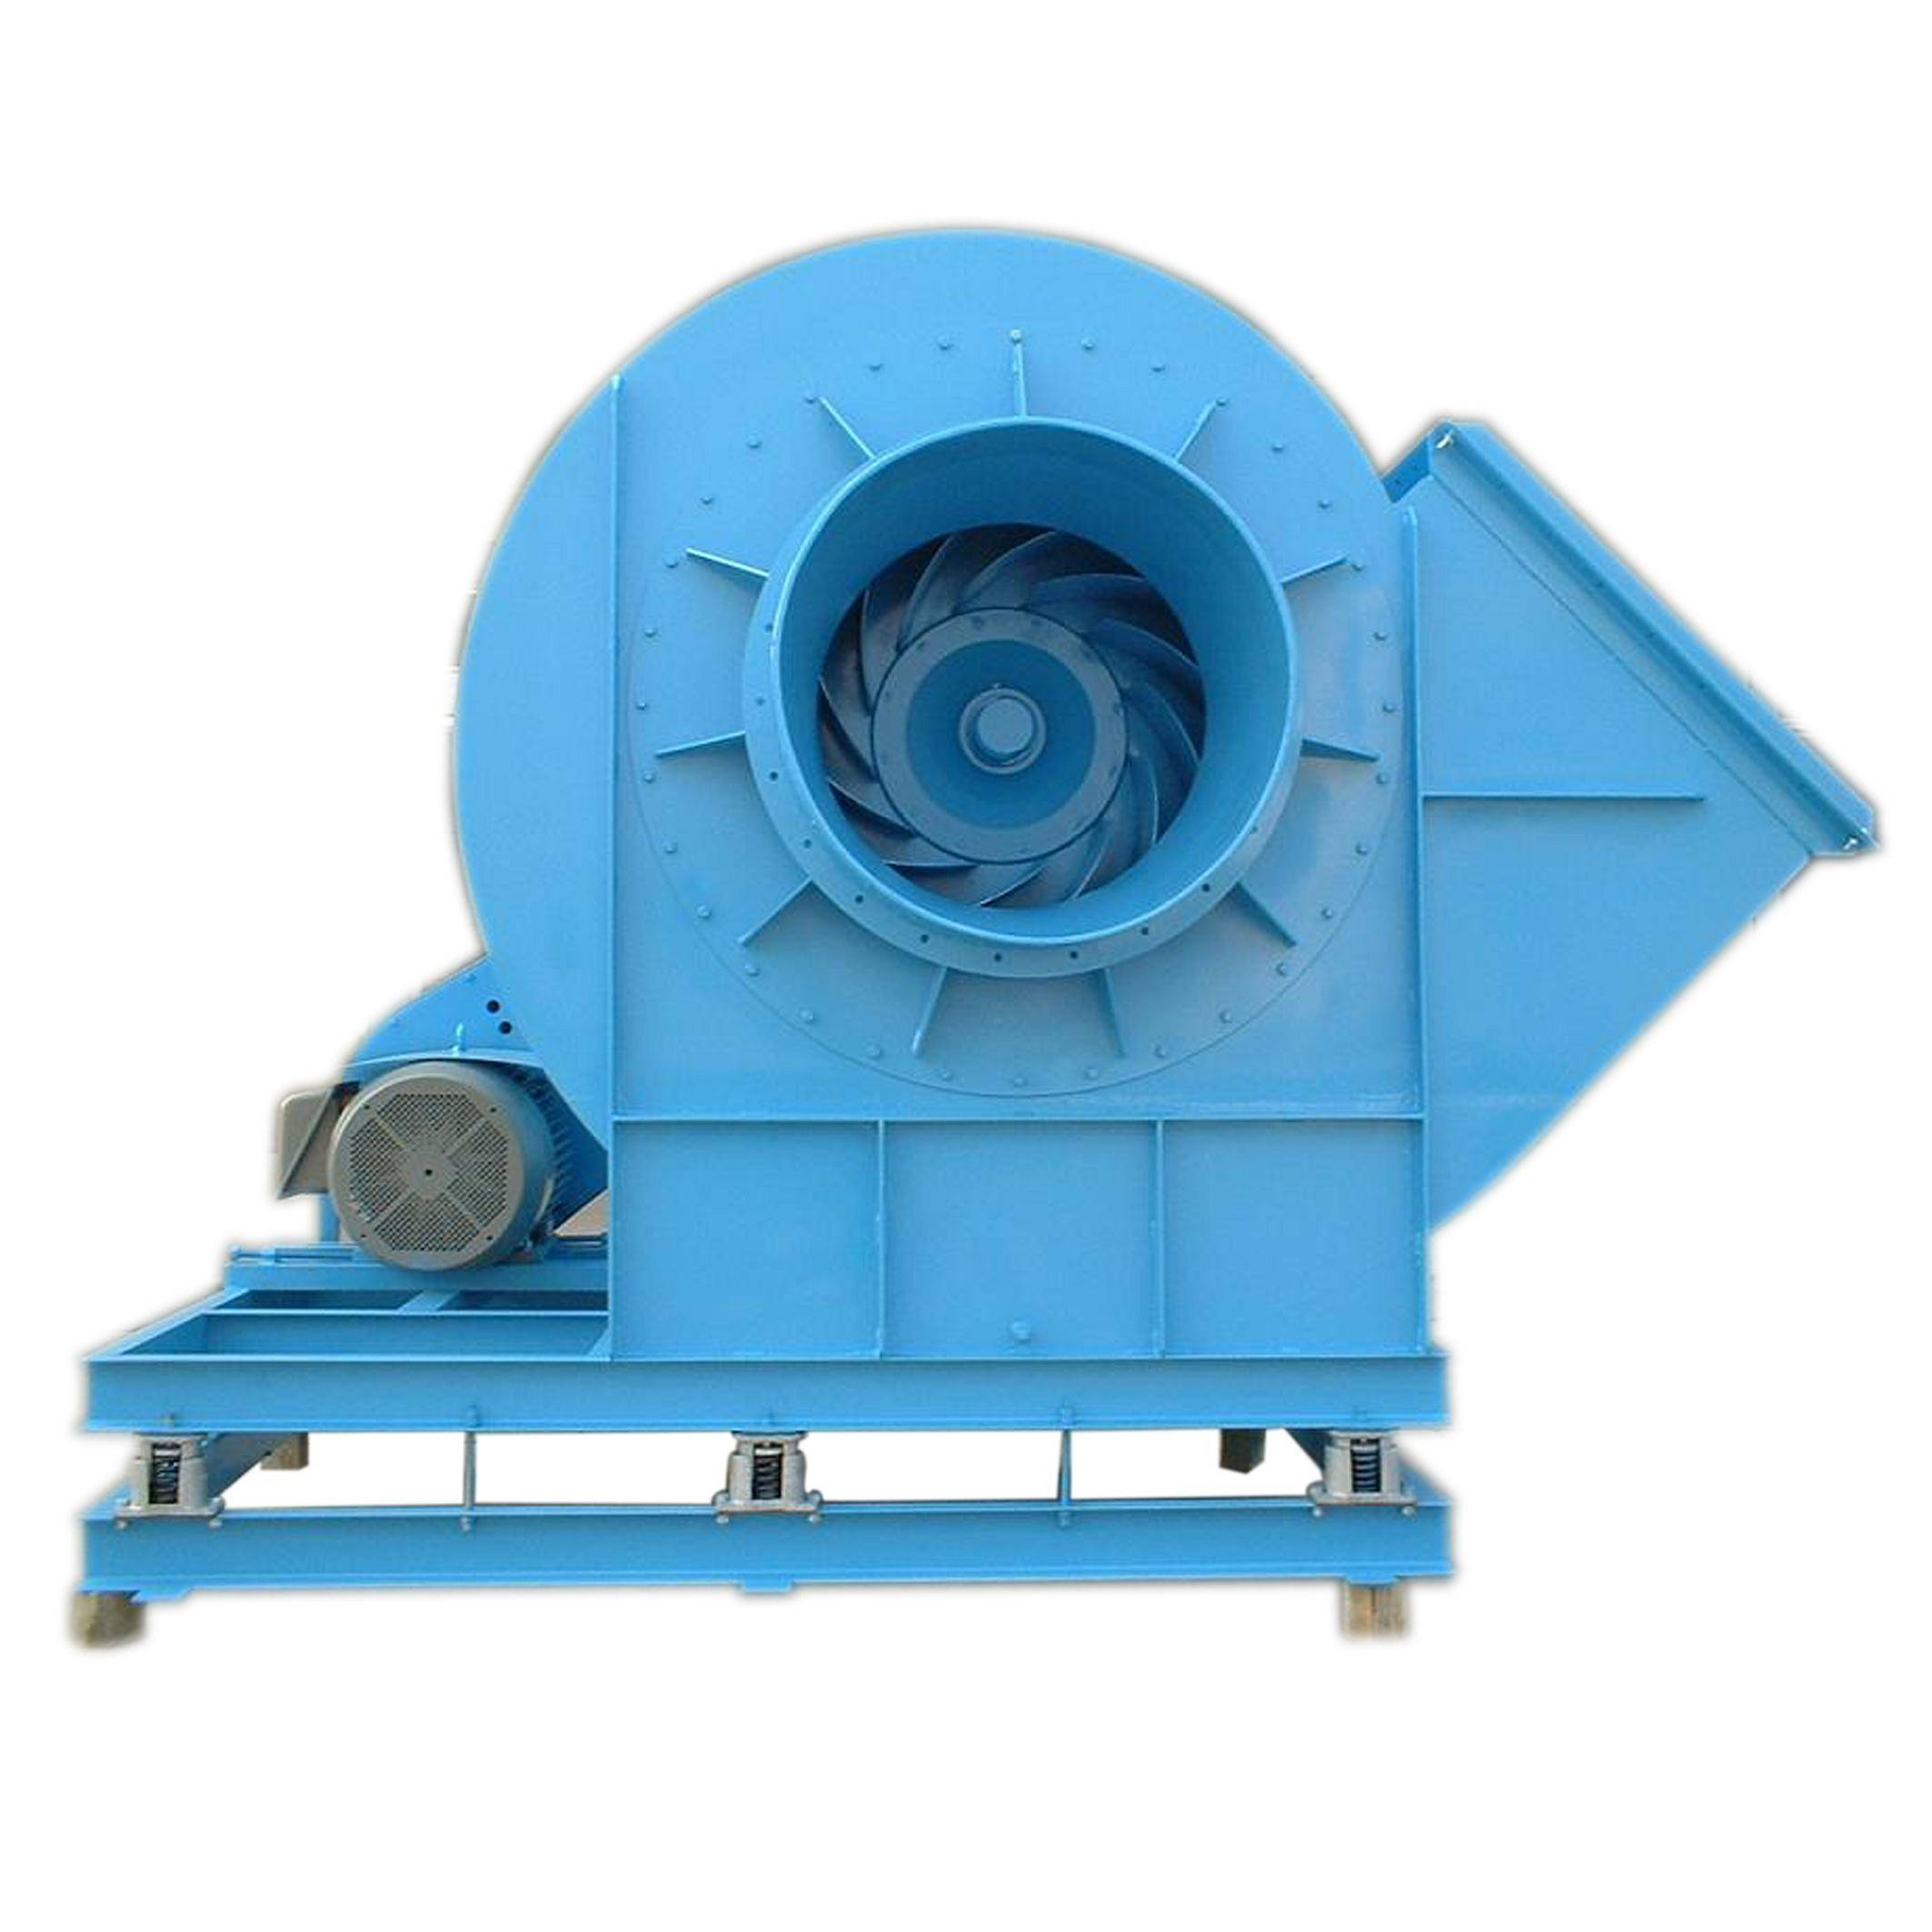 centrifugal fans Product line of centrifugal fans represents an expansion of a diverse production programme of končar - mes dd by offering them we open a new dimensions of the pressure devices development.